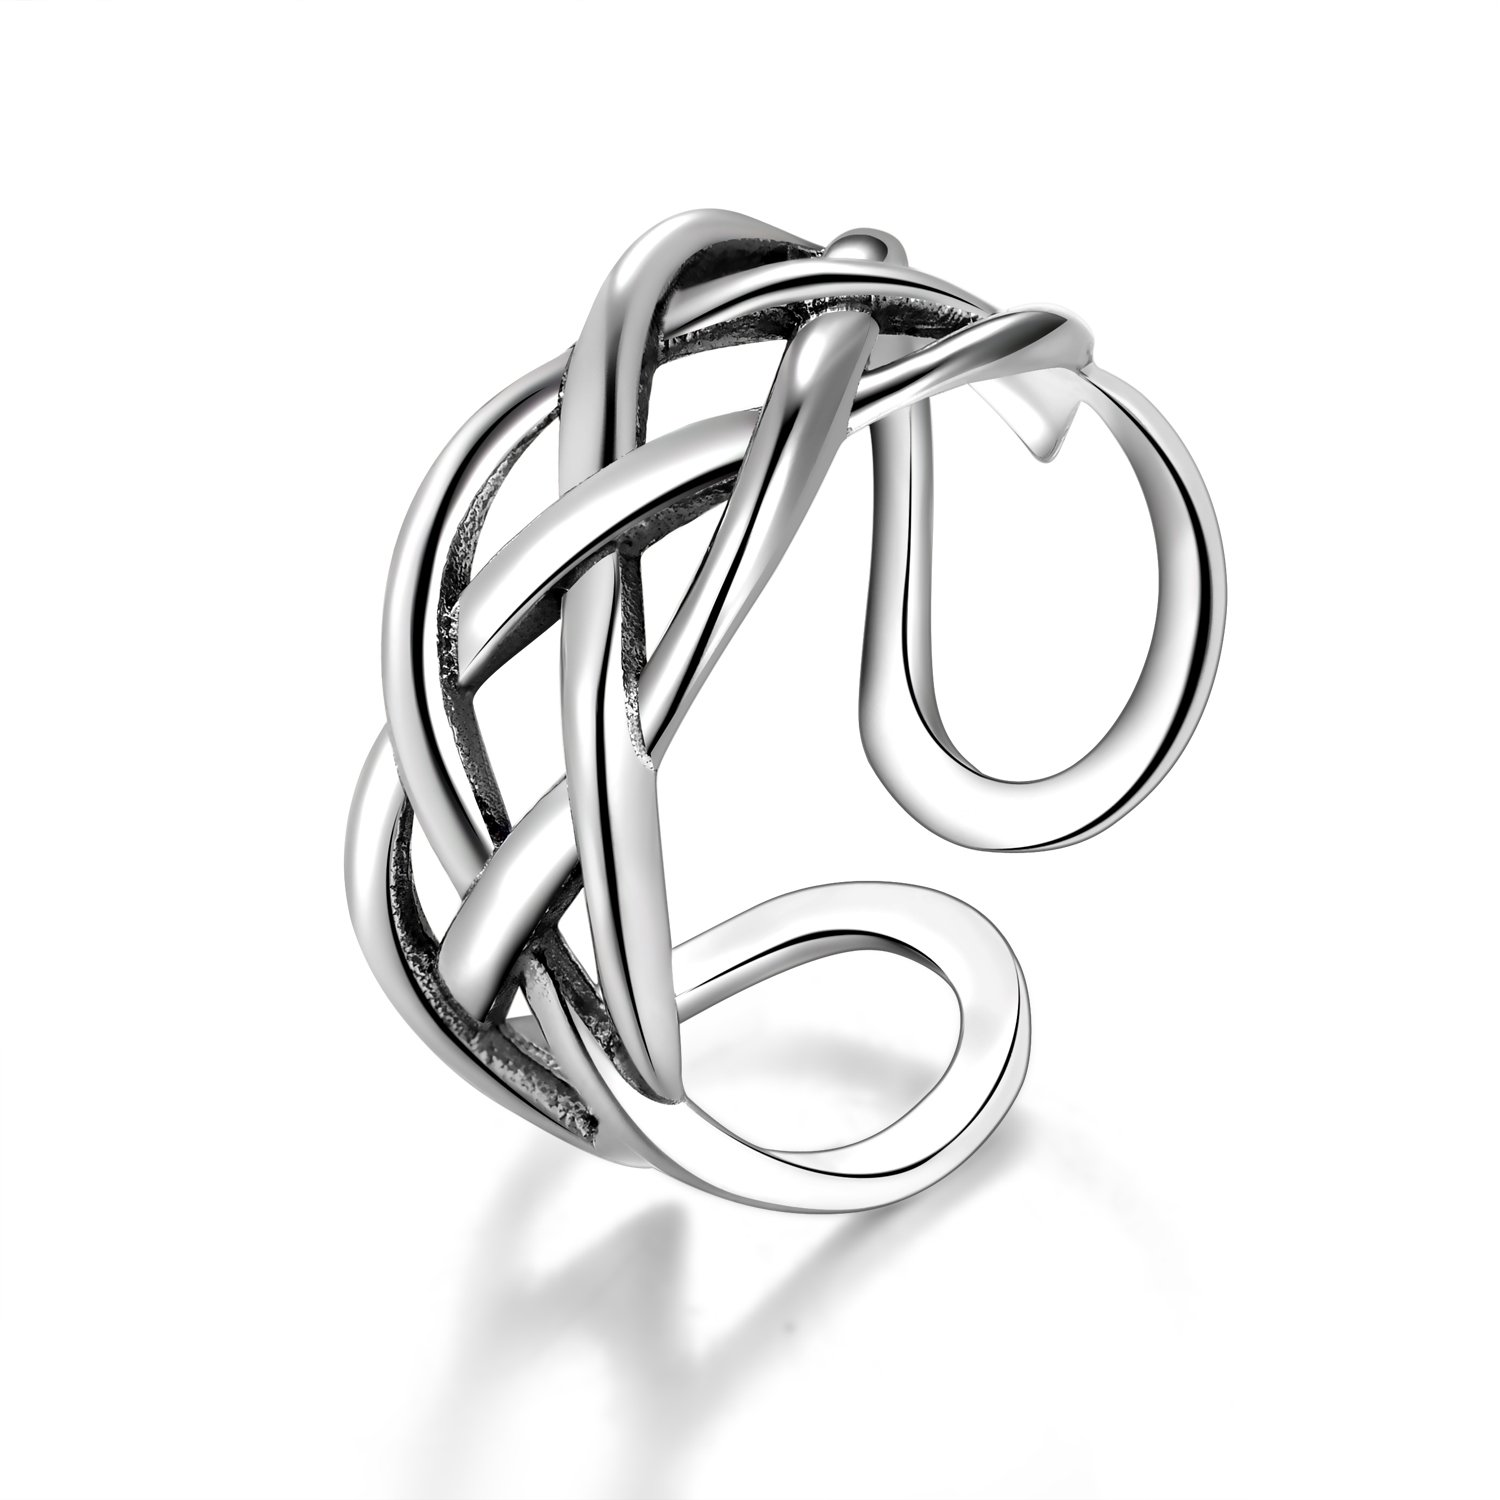 Candyfancy Love Celtic Knot Ring 925 Sterling Silver Adjustable Open Ring for Women Girls R133